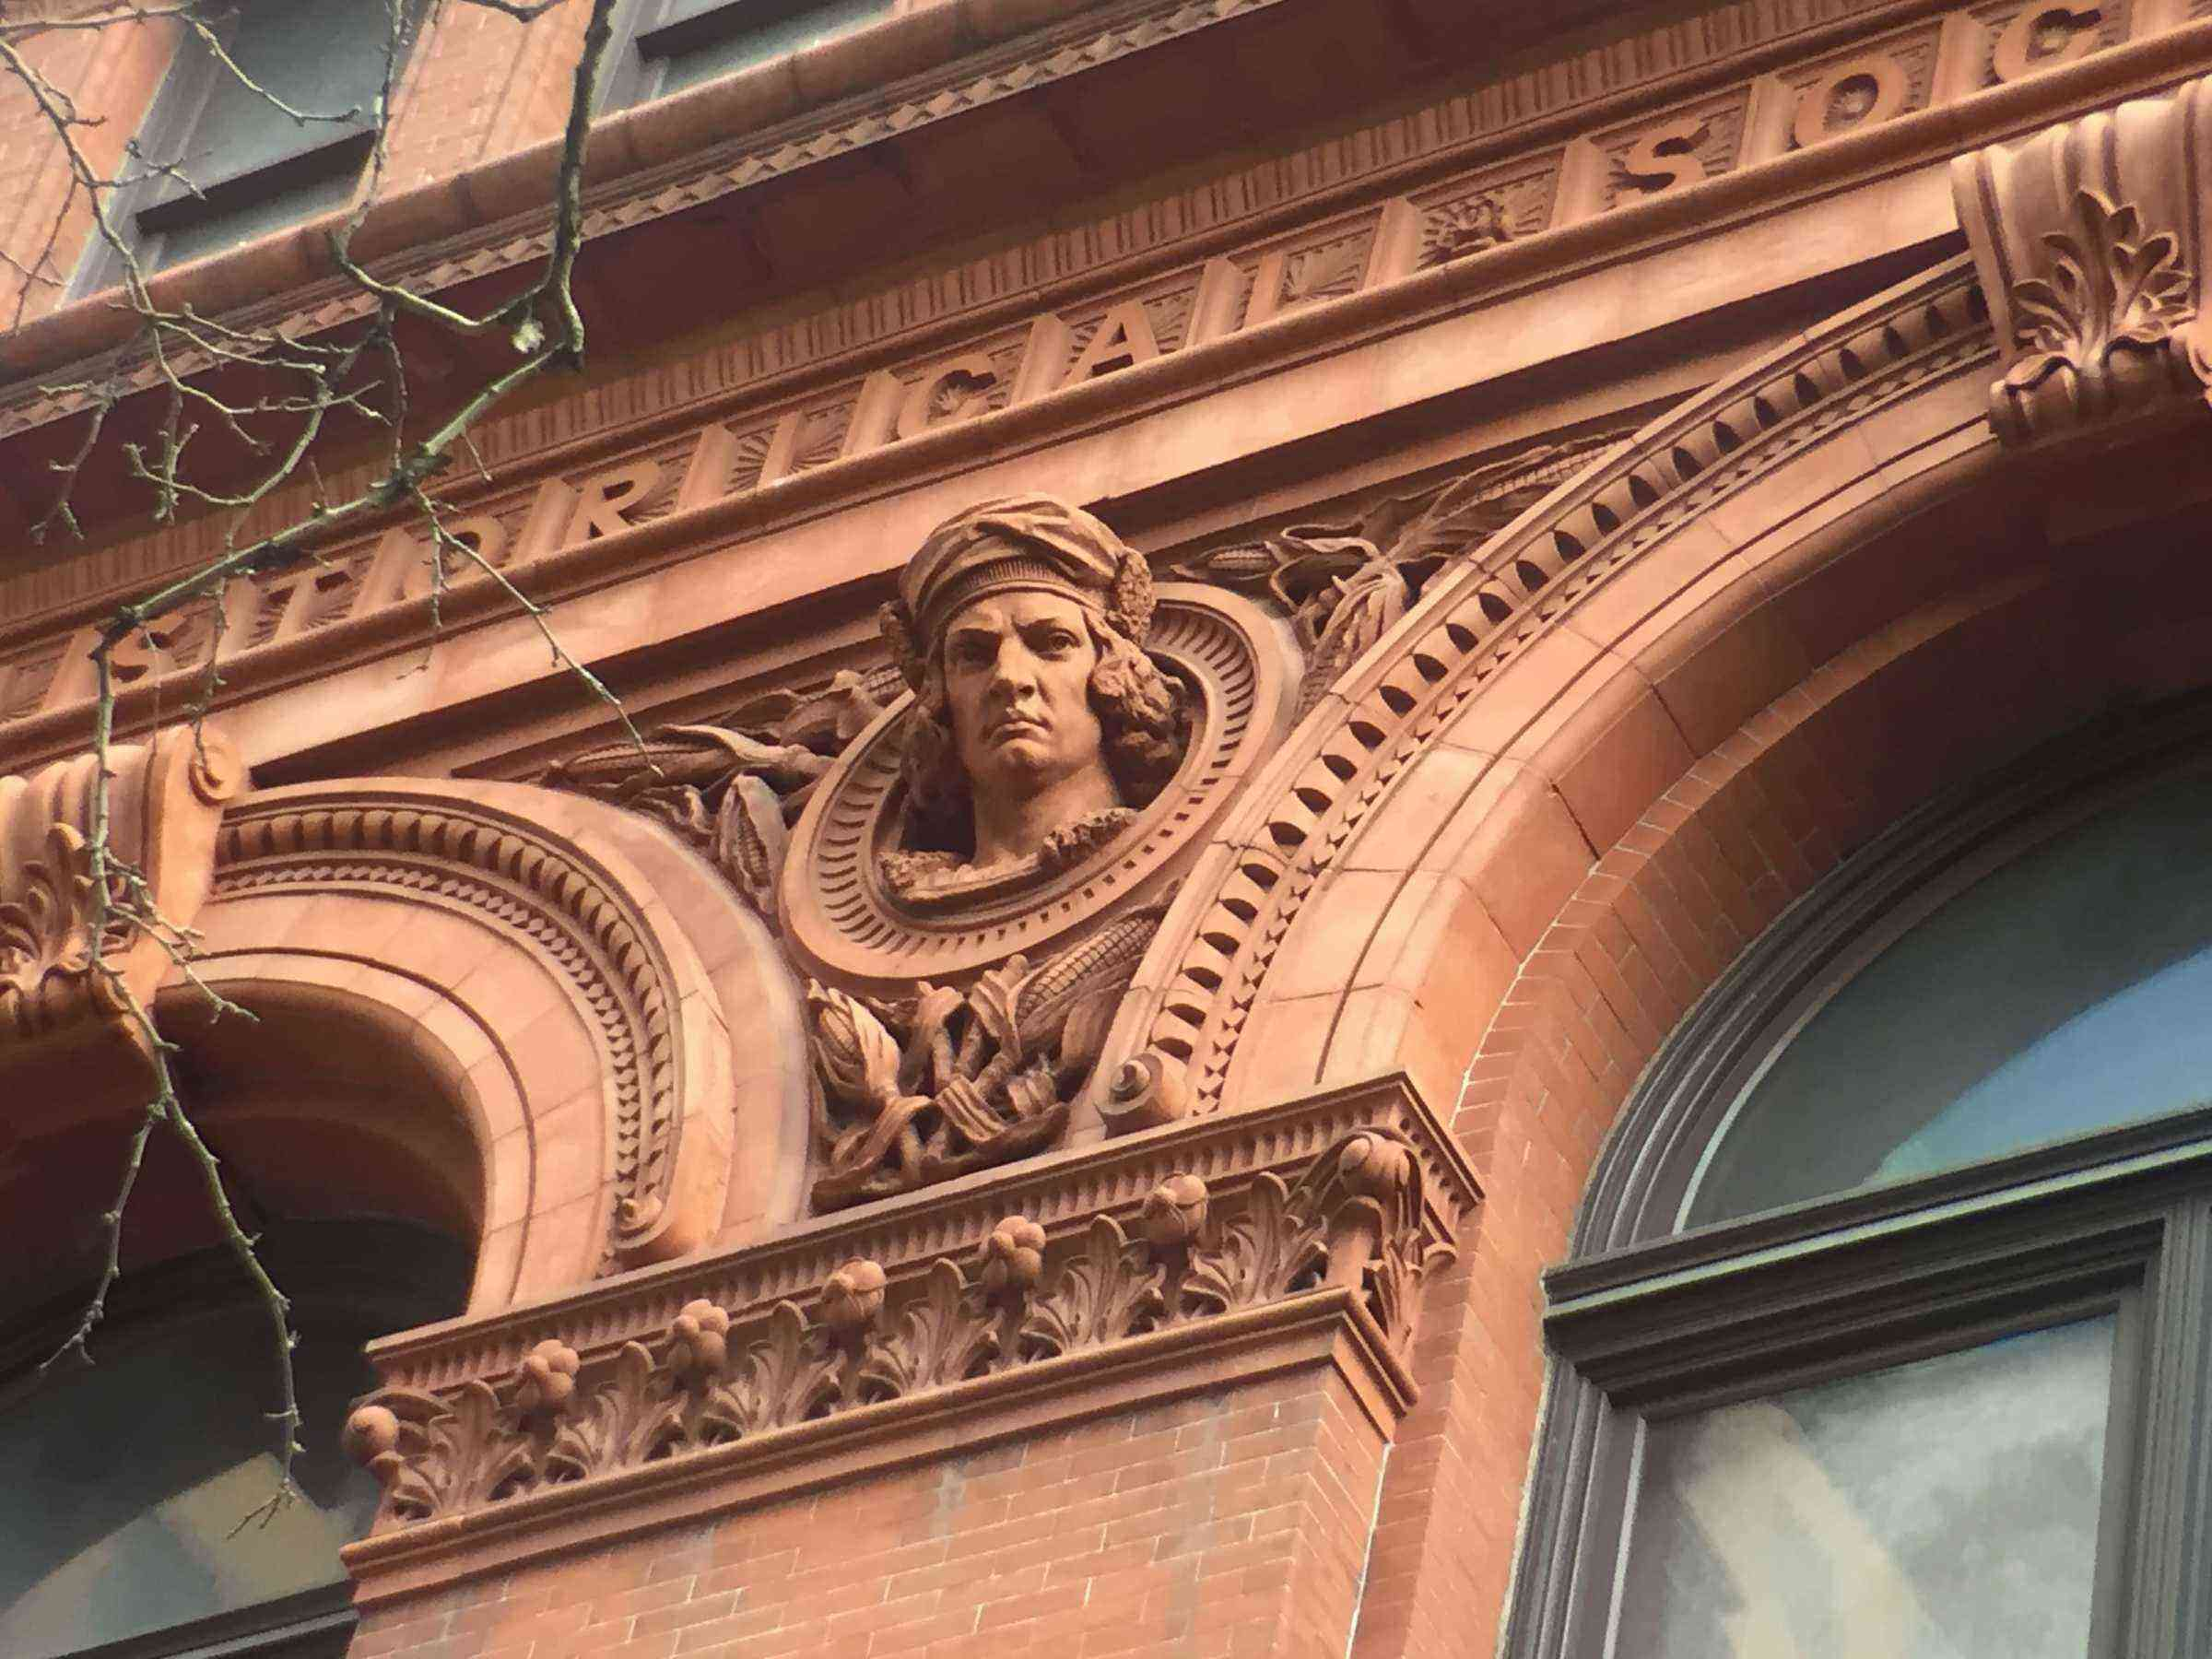 3) Brooklyn Historical Society, Columbus